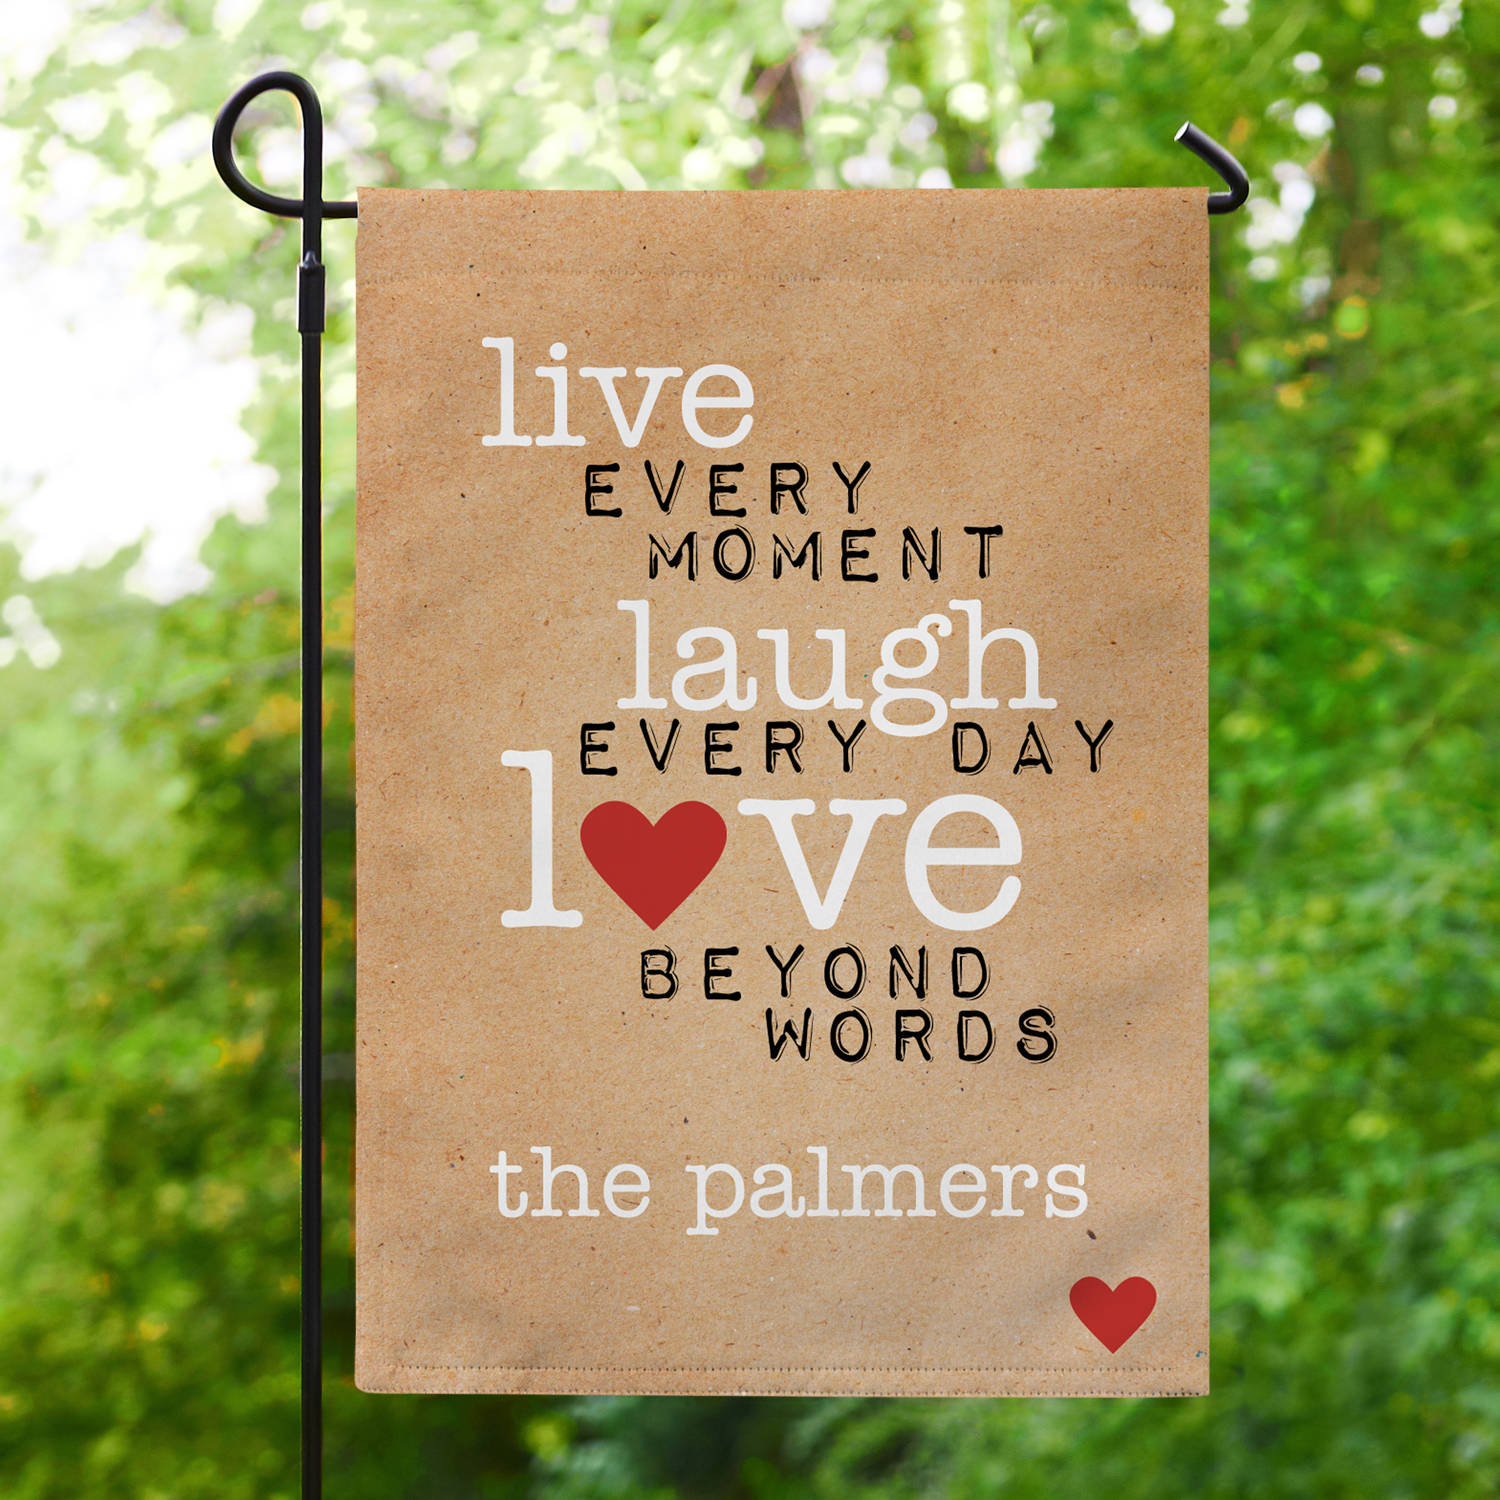 Personalized Live, Laugh, Love Beyond Words Garden Flag